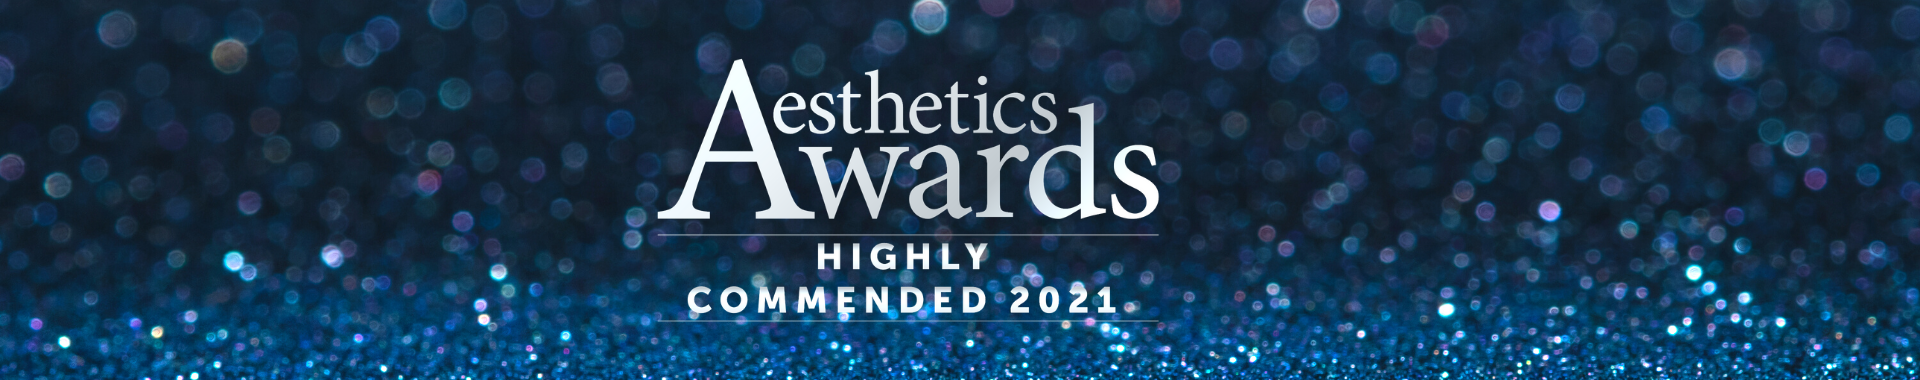 Aesthetics Awards 2021 Highly Commended